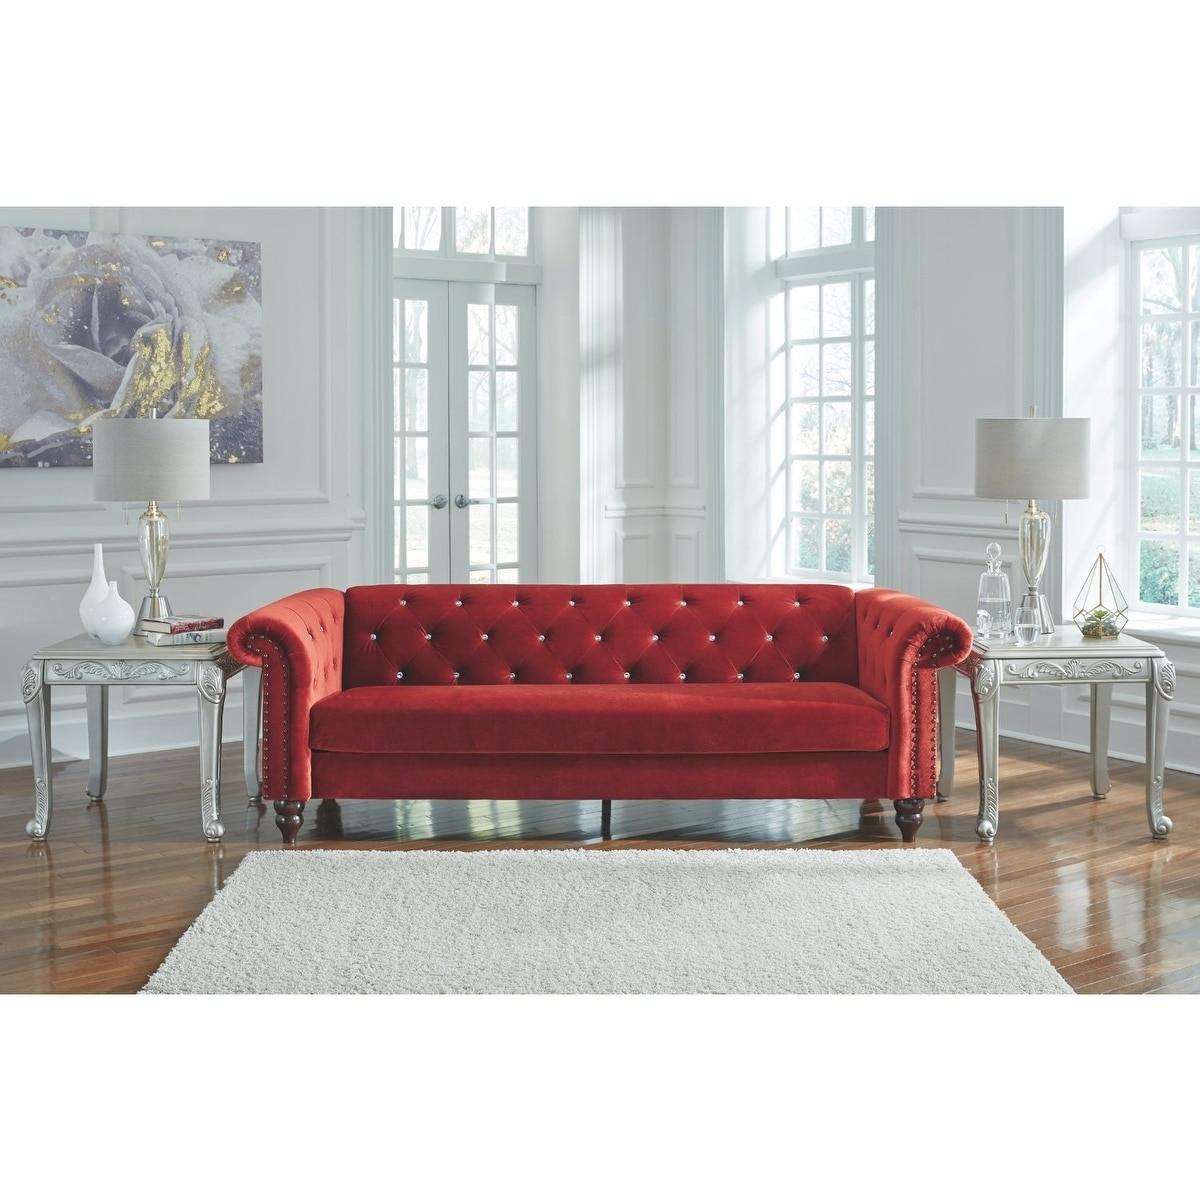 Signature Design By Ashley Malchin Red Contemporary Ready To Emble Sofa Free Shipping Today 22595389